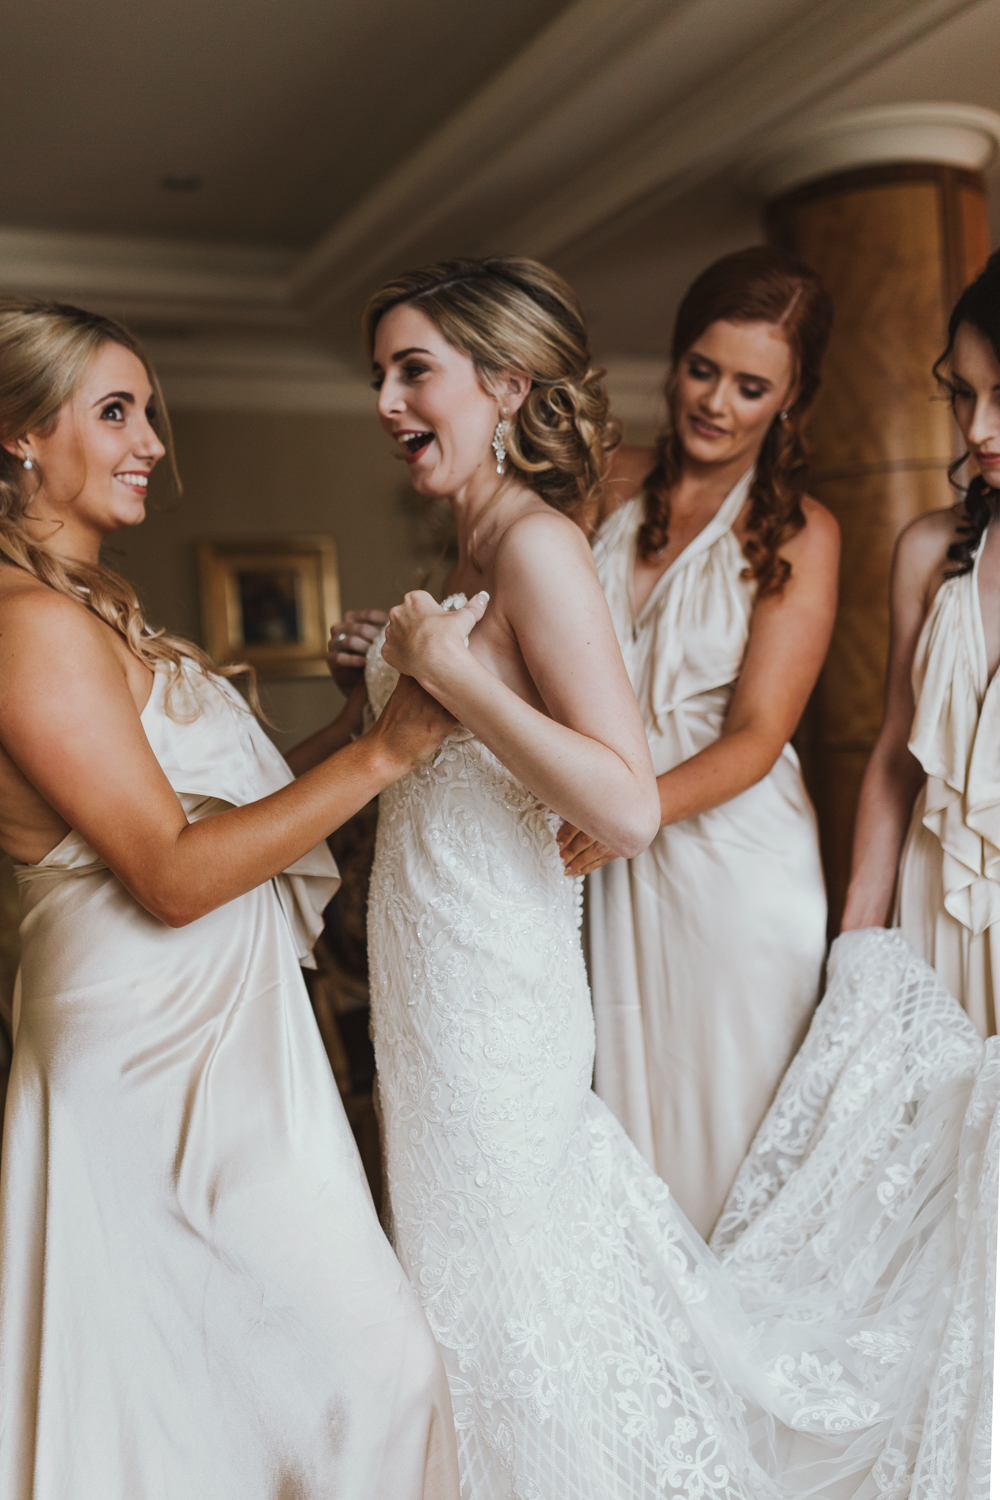 Bridesmaid assists bride and smiles at wedding in Brisbane.